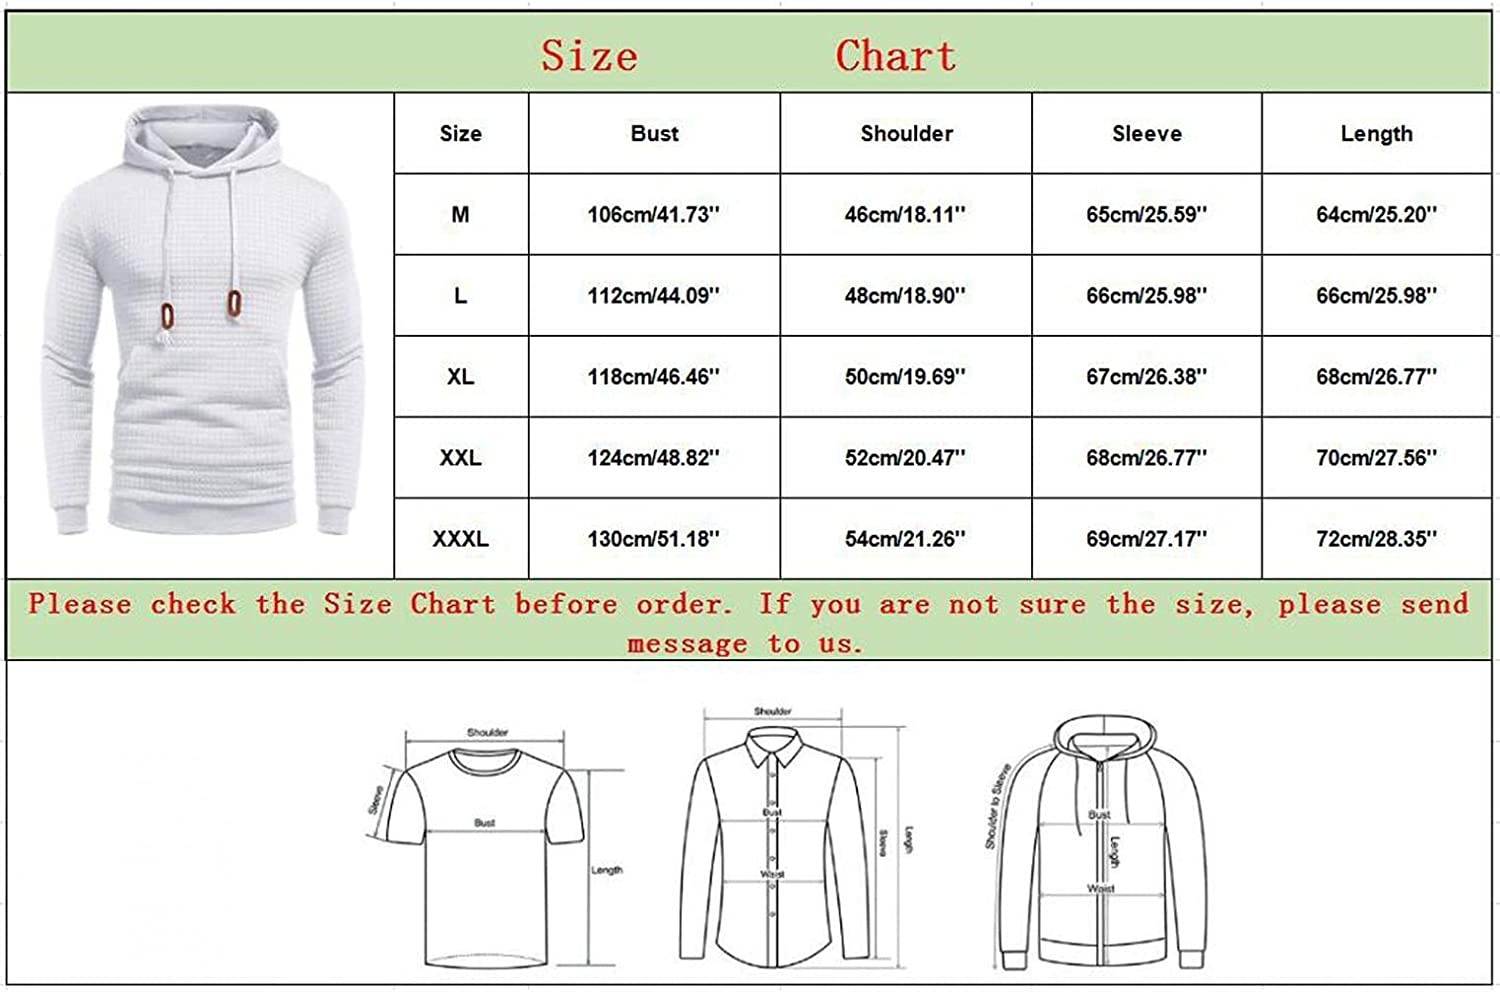 Aayomet Hoodies Sweatshirts for Men Fashion Solid Checked Tops Zipper Long Sleeve Workout Hooded Pullover Shirts Blouses